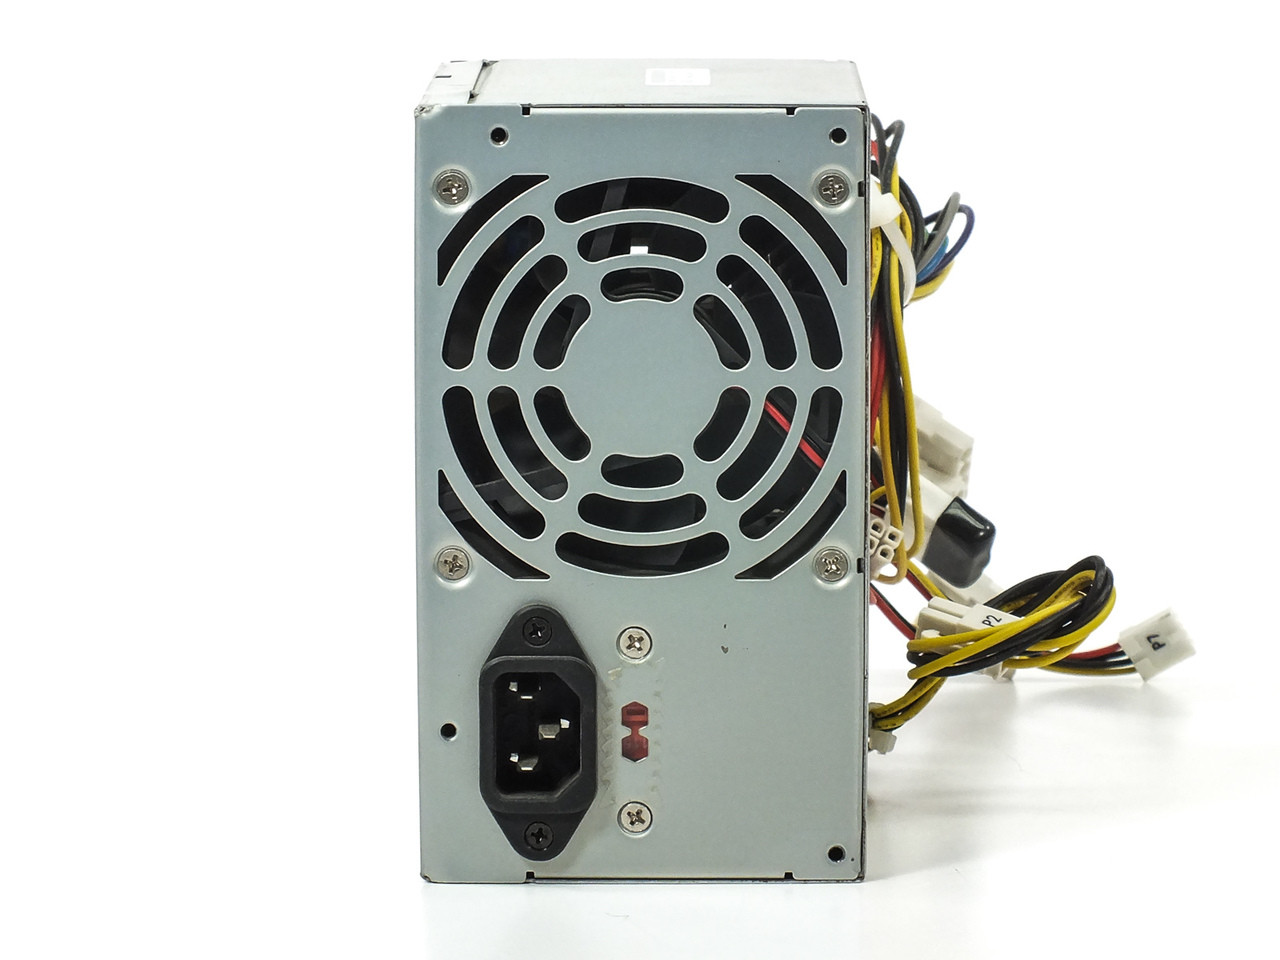 DELL PS-5022-2DF 200W POWER SUPPLY TESTED